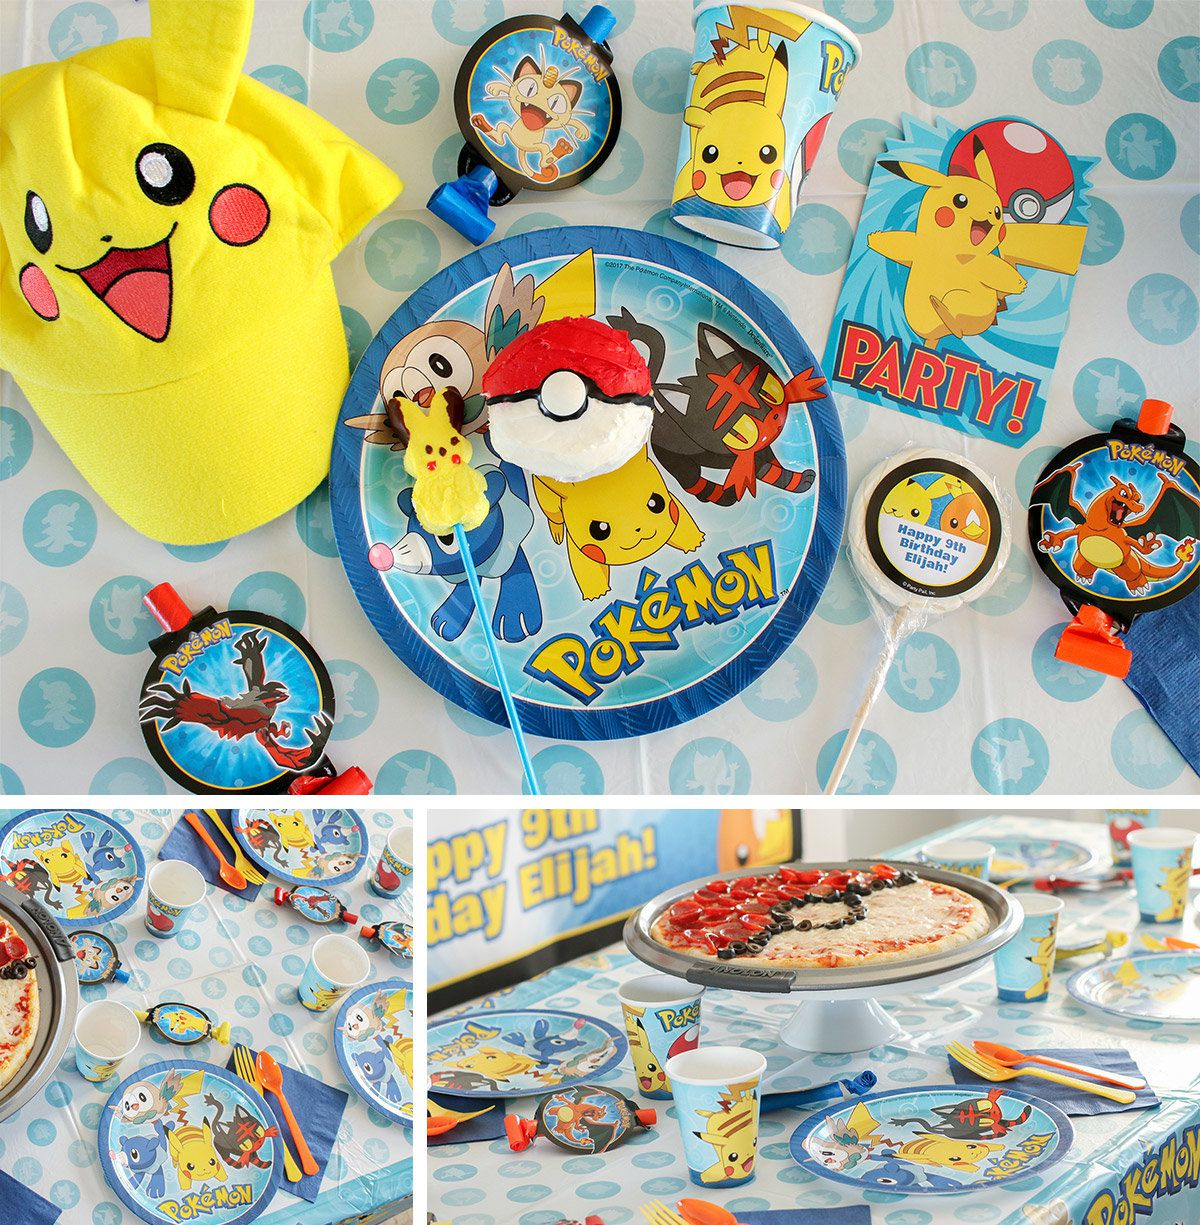 Pokemon Party Ideas - Decorations